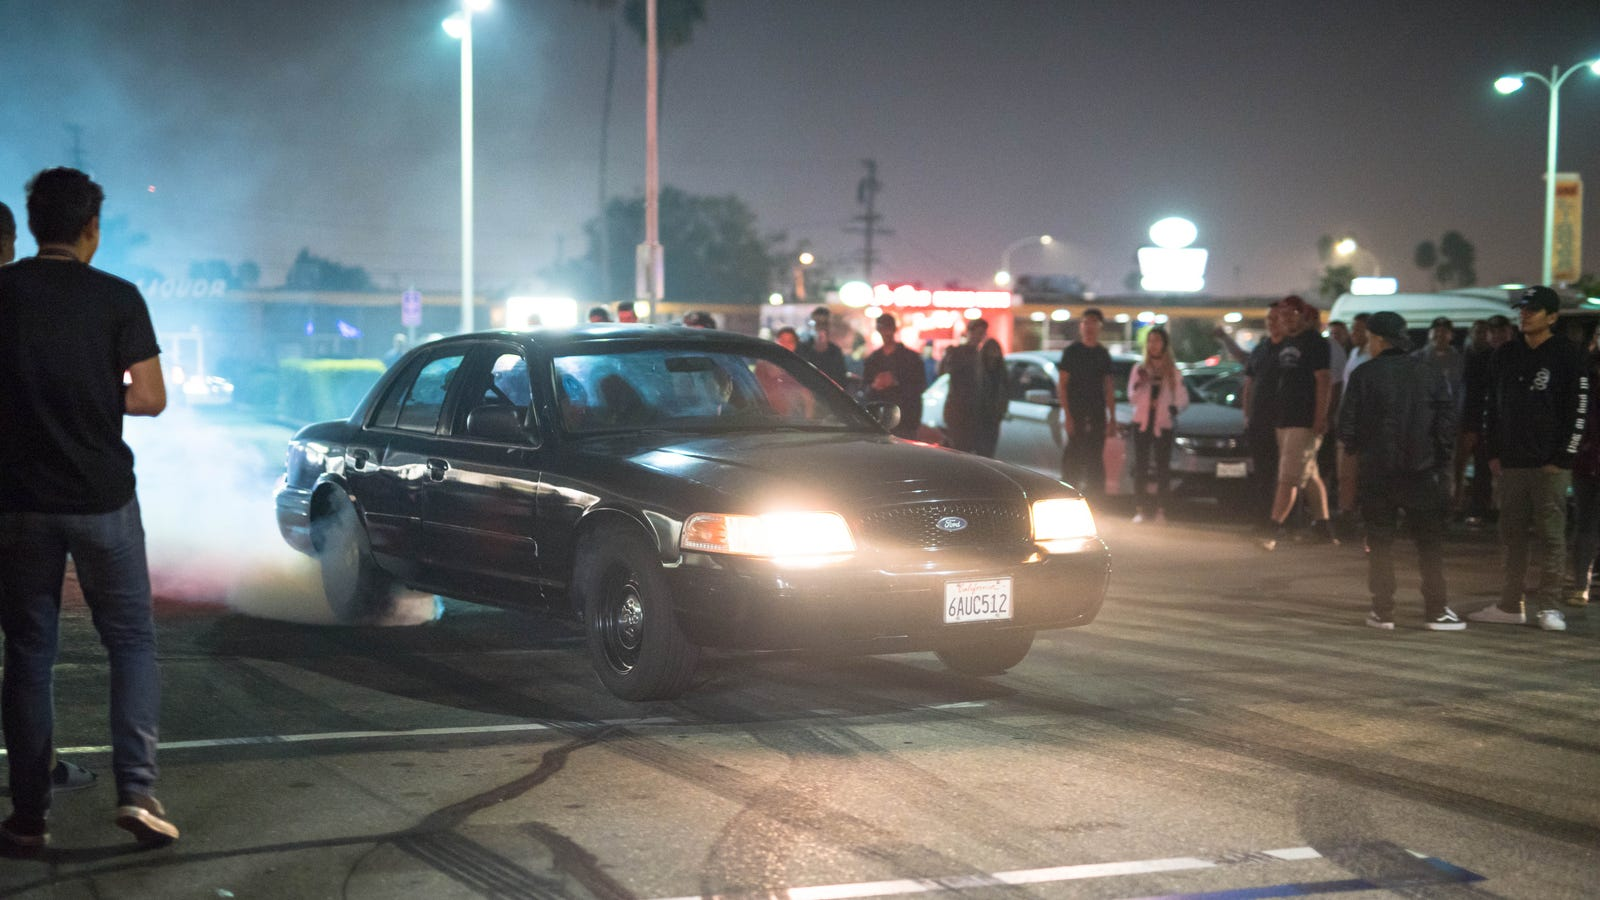 I Went To An Underground Car Meet In America And It Was Ridiculous - Meet craziest man world mustang wanted